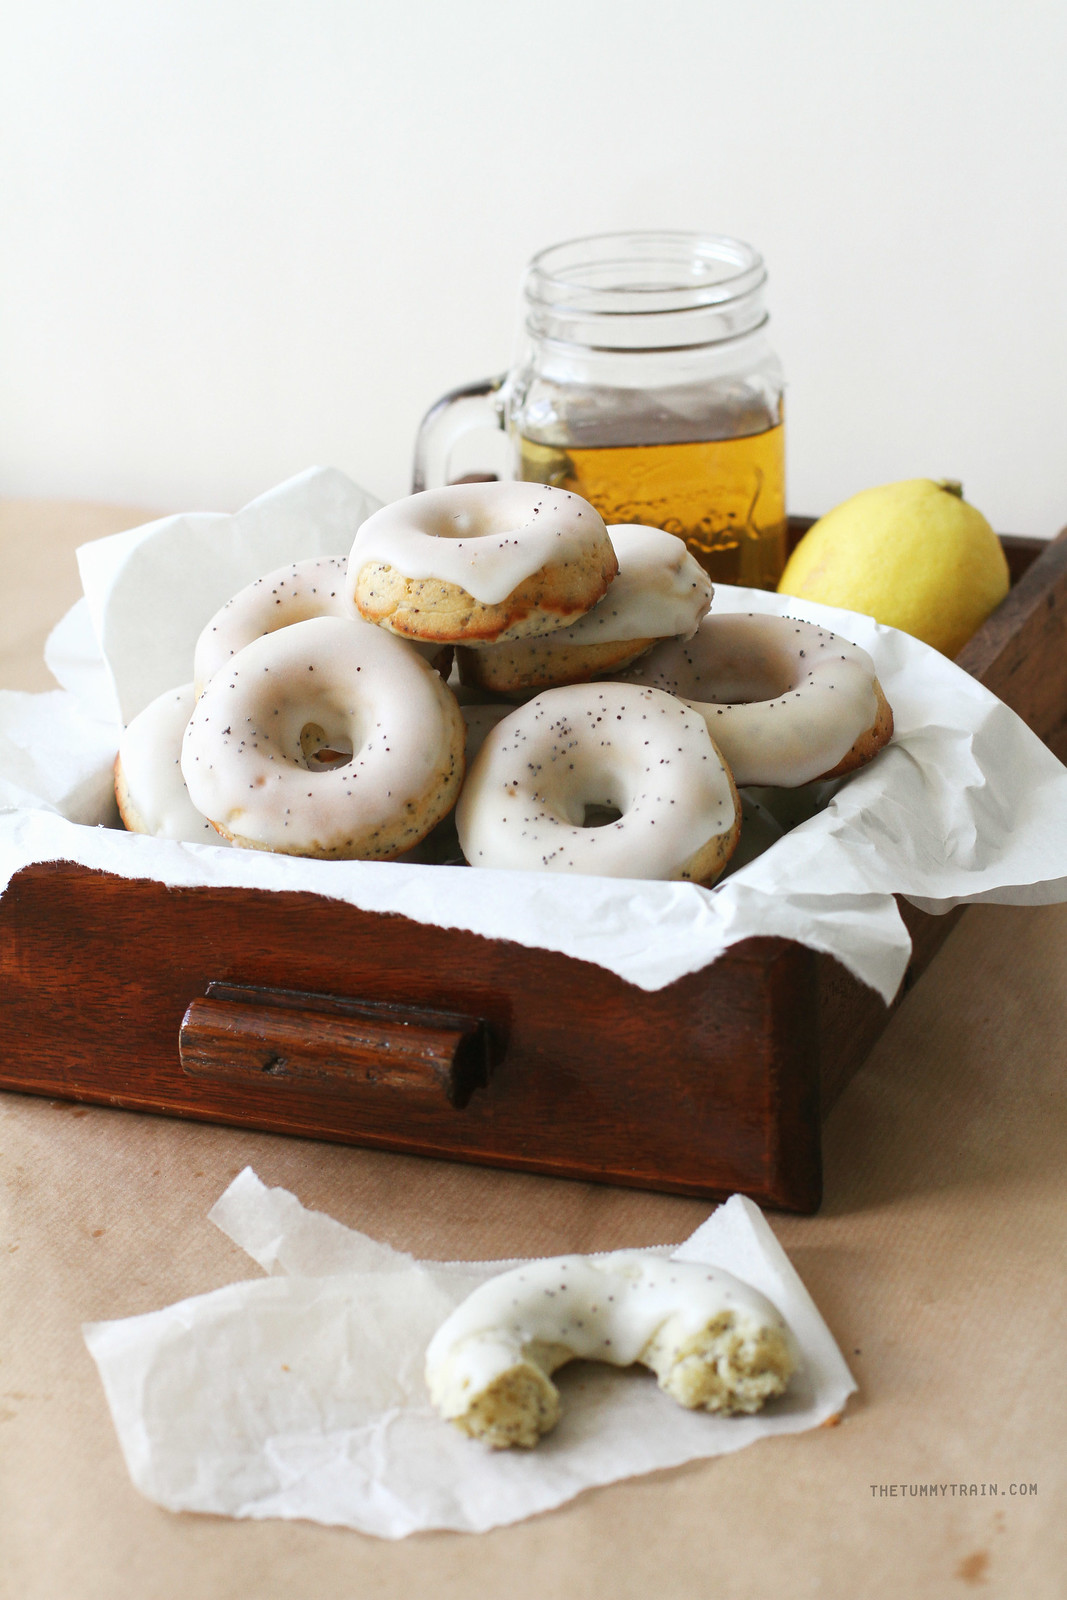 28115894446 f92890547c h - Digging out these Baked Lemon Poppyseed Doughnuts from my archives